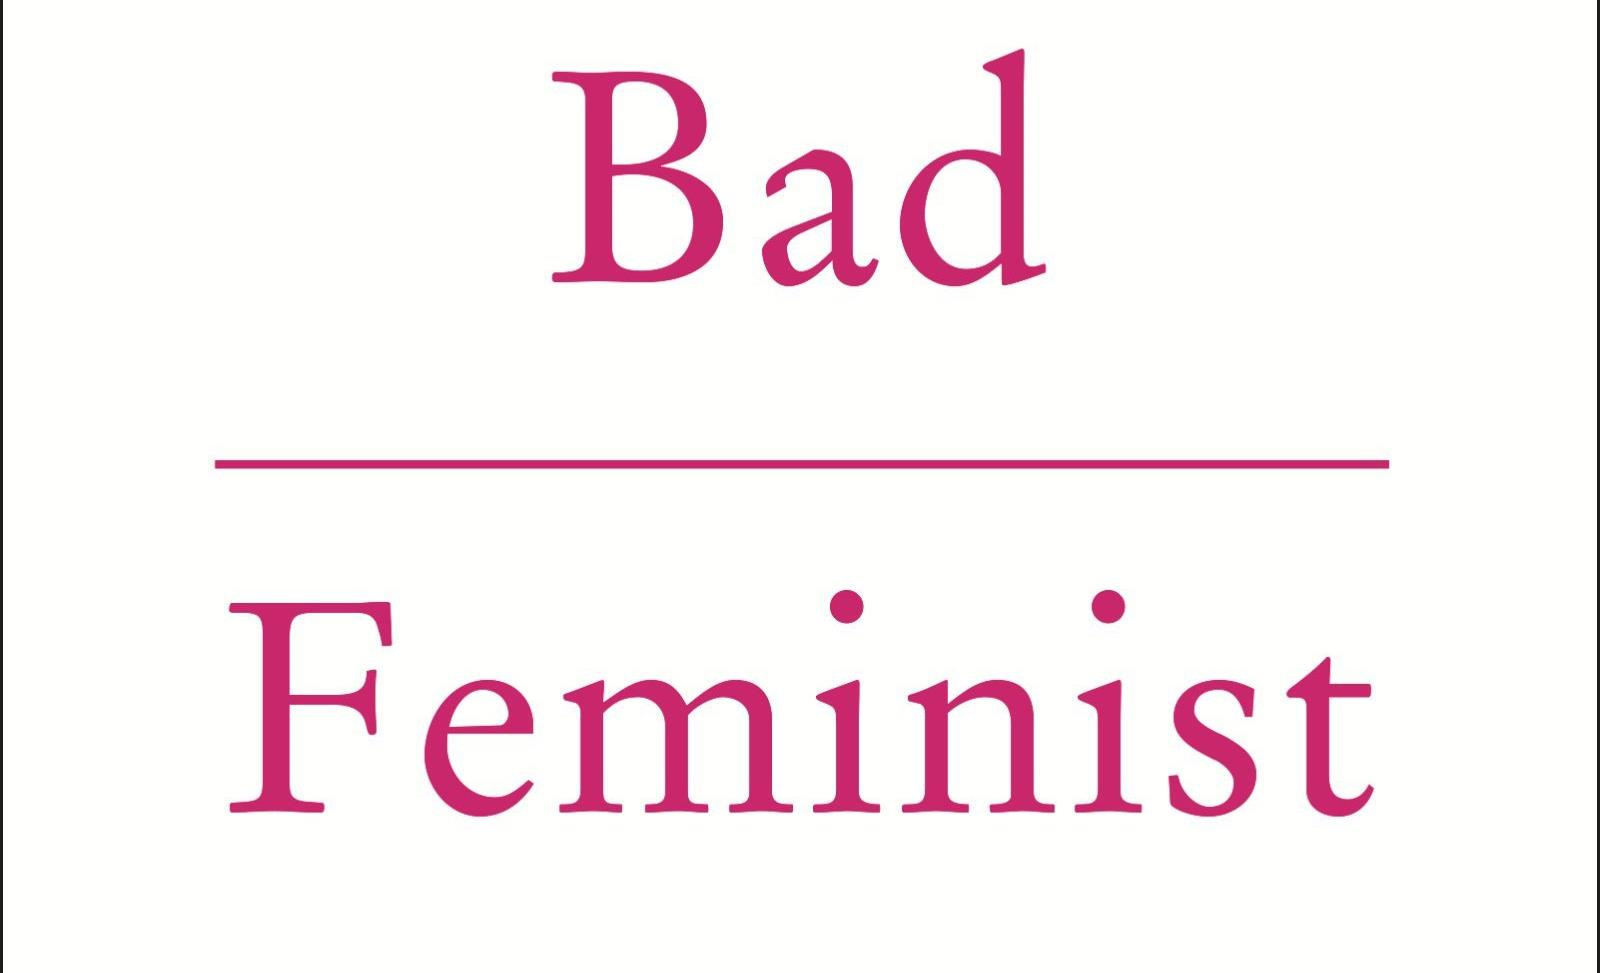 013 Feminist Essays Essay Incredible Bad Review Pdf Epub Full